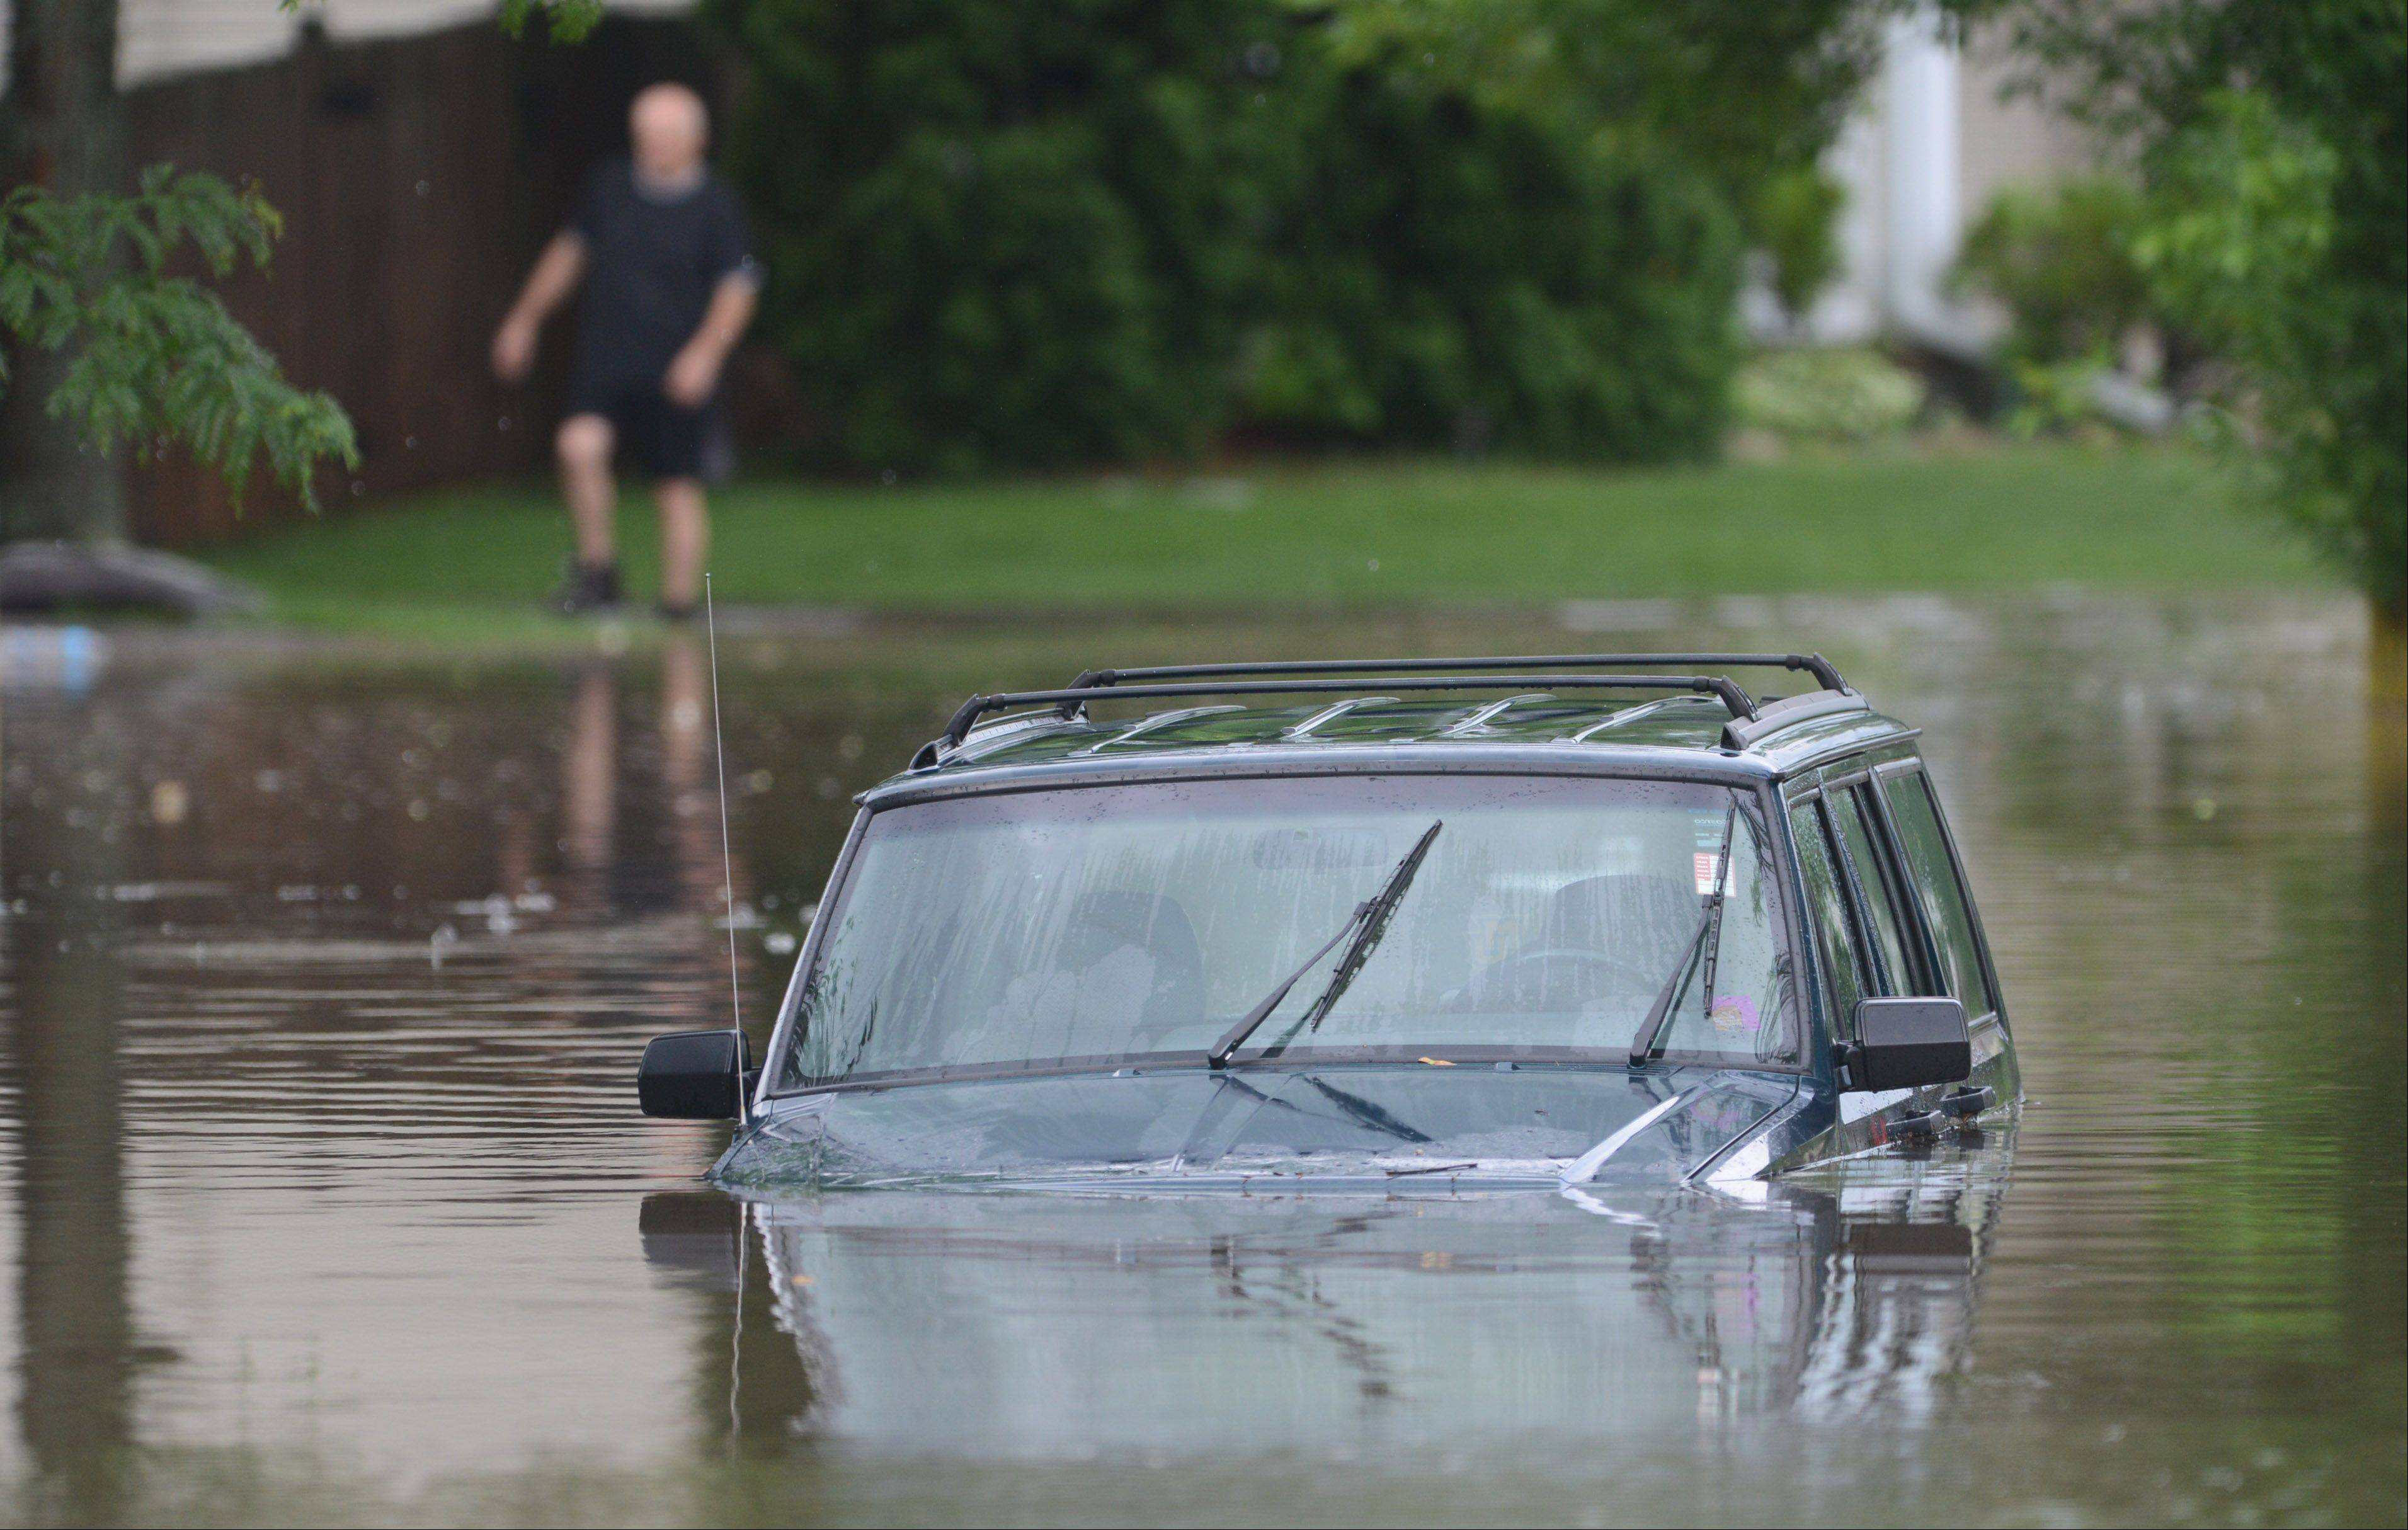 A car is submerged underwater along Bristol Trail Road in Lake Zurich Wednesday morning after heavy rains hit the area.